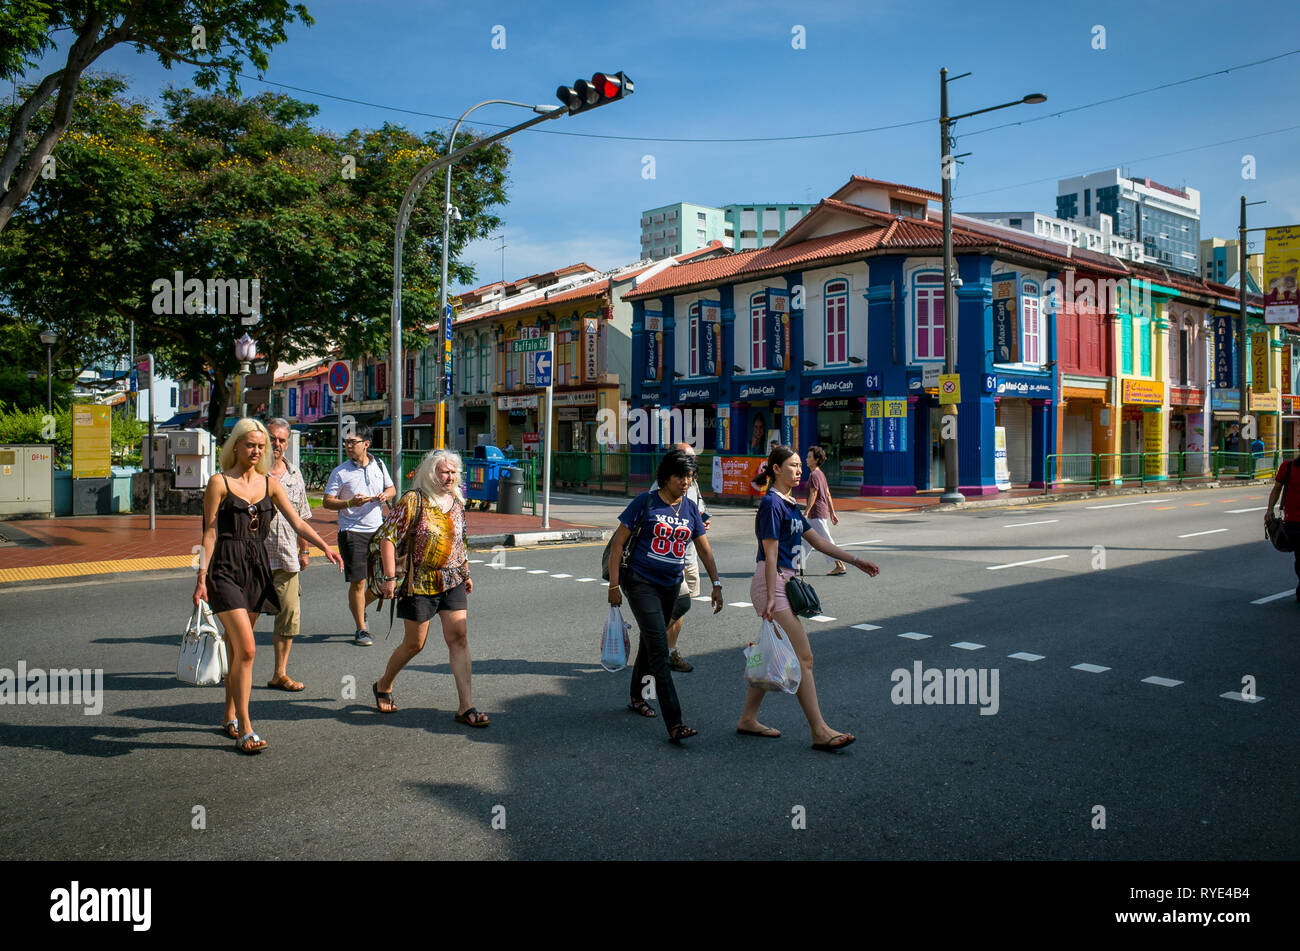 Foreign tourists crossing the street at Deepavali Festival, Little India - Singapore - Stock Image